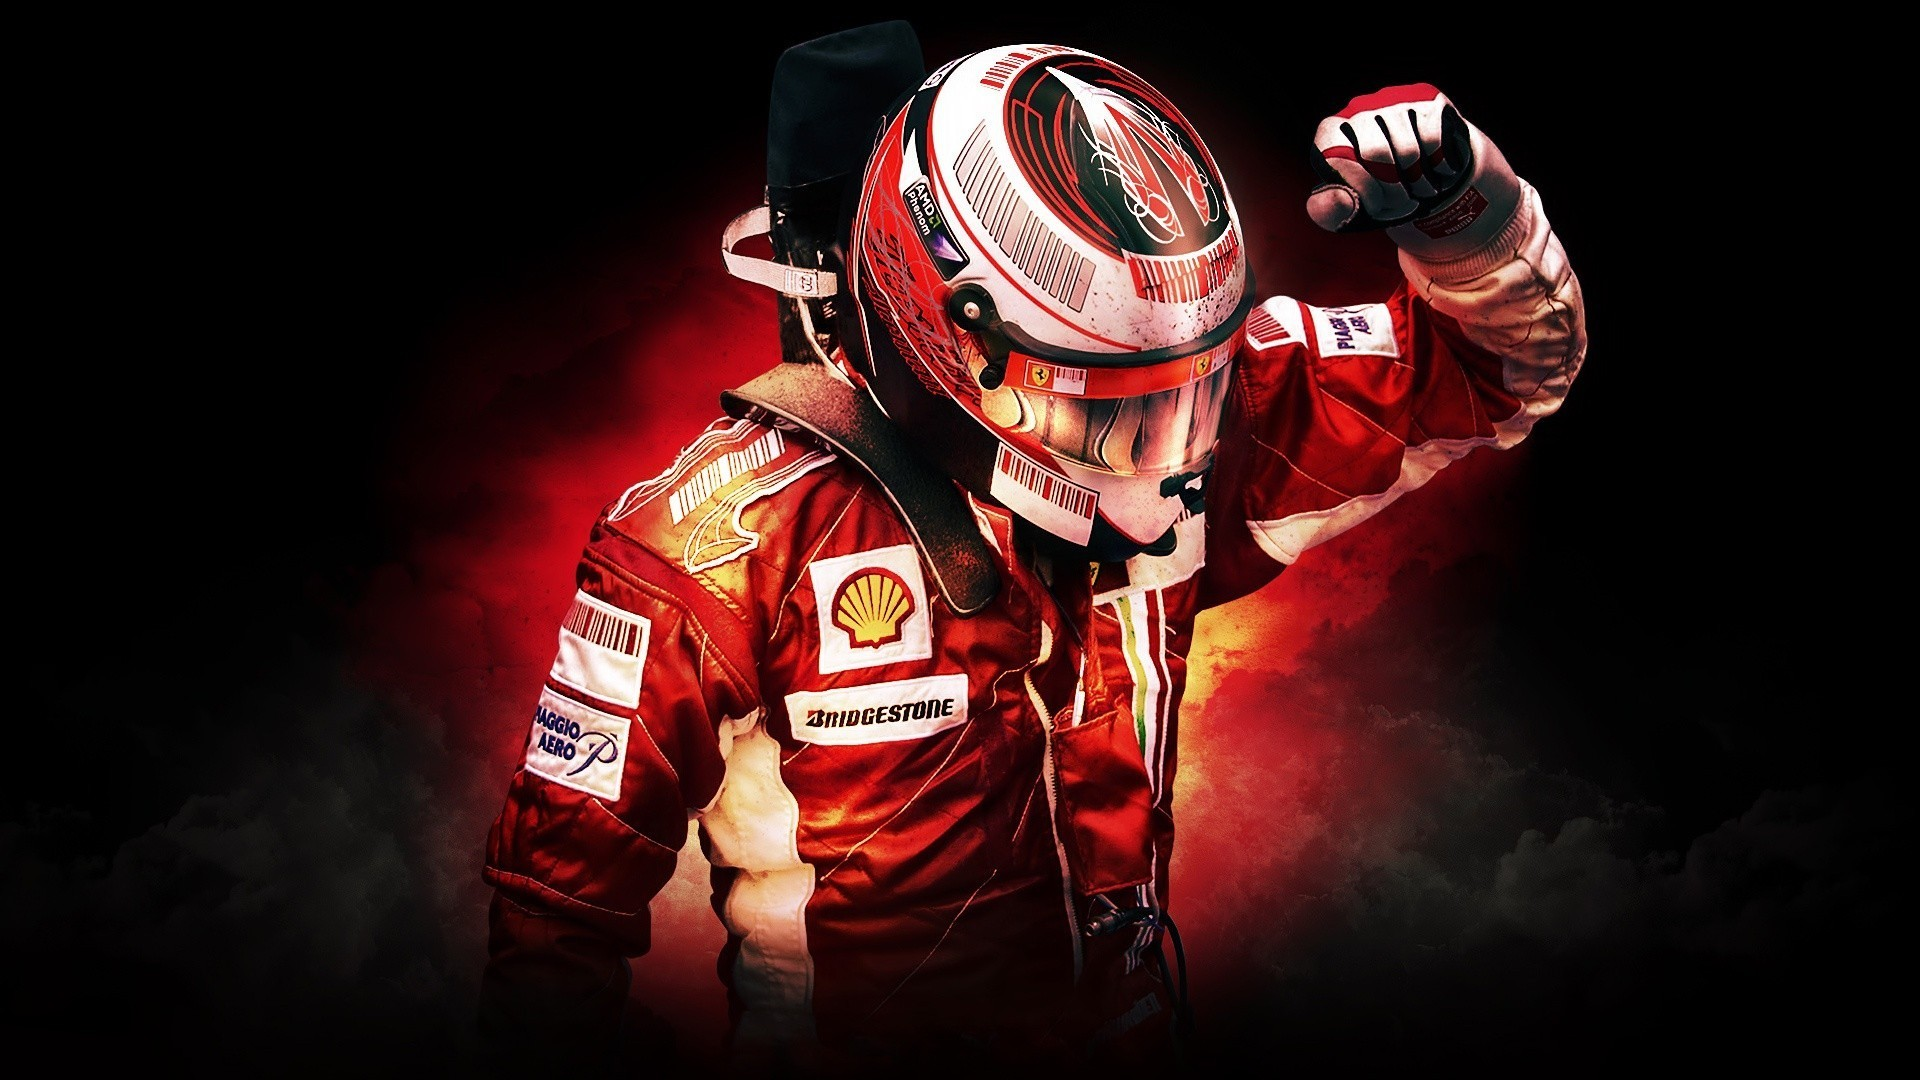 Scuderia Ferrari Wallpapers 73 Pictures